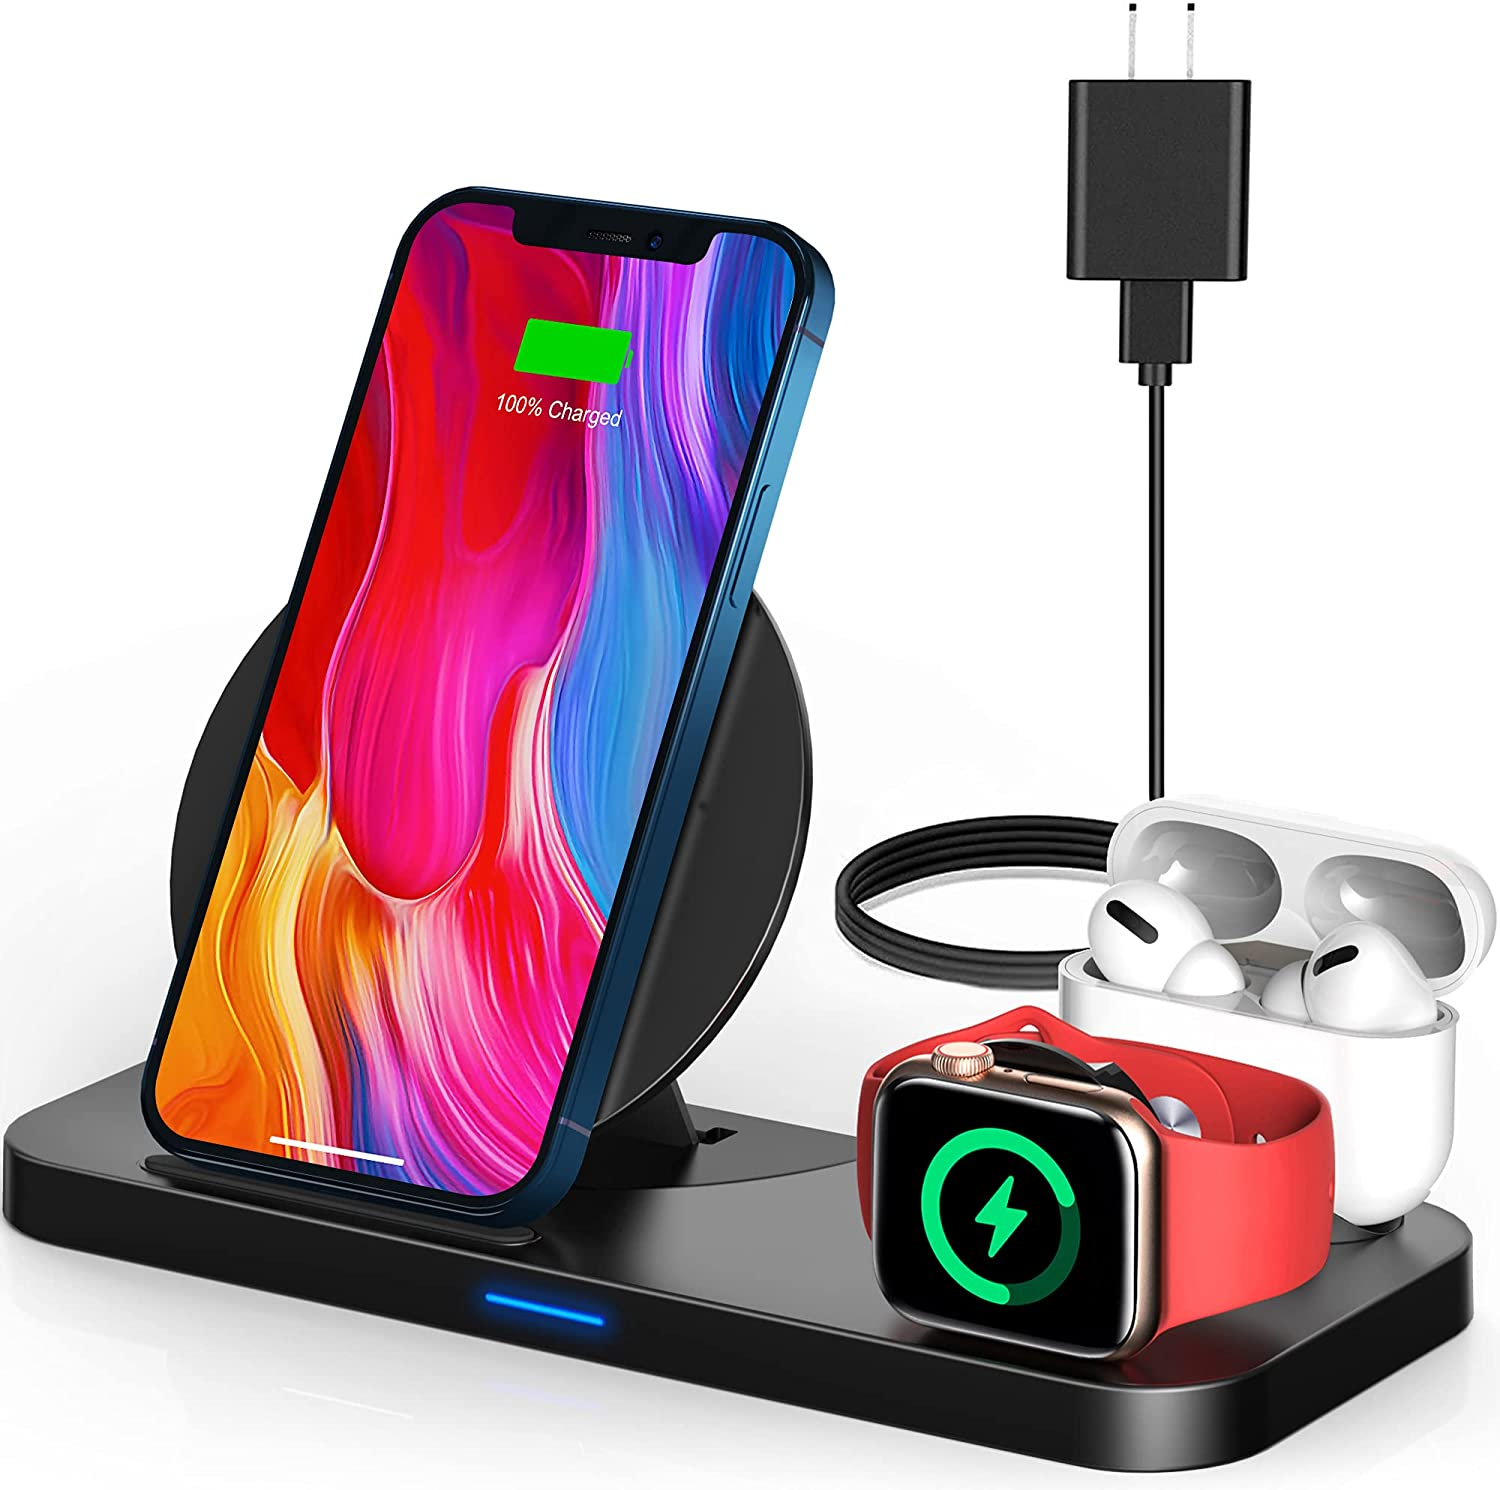 Wireless Charging Station for Apple Products, 3 in 1 Wireless Charger Charging Stand Compatible with Apple Watch and Airpods Pro, 2, Fast Charging Dock for iPhone 12 pro, 11, Xs max, Xr, X, 8